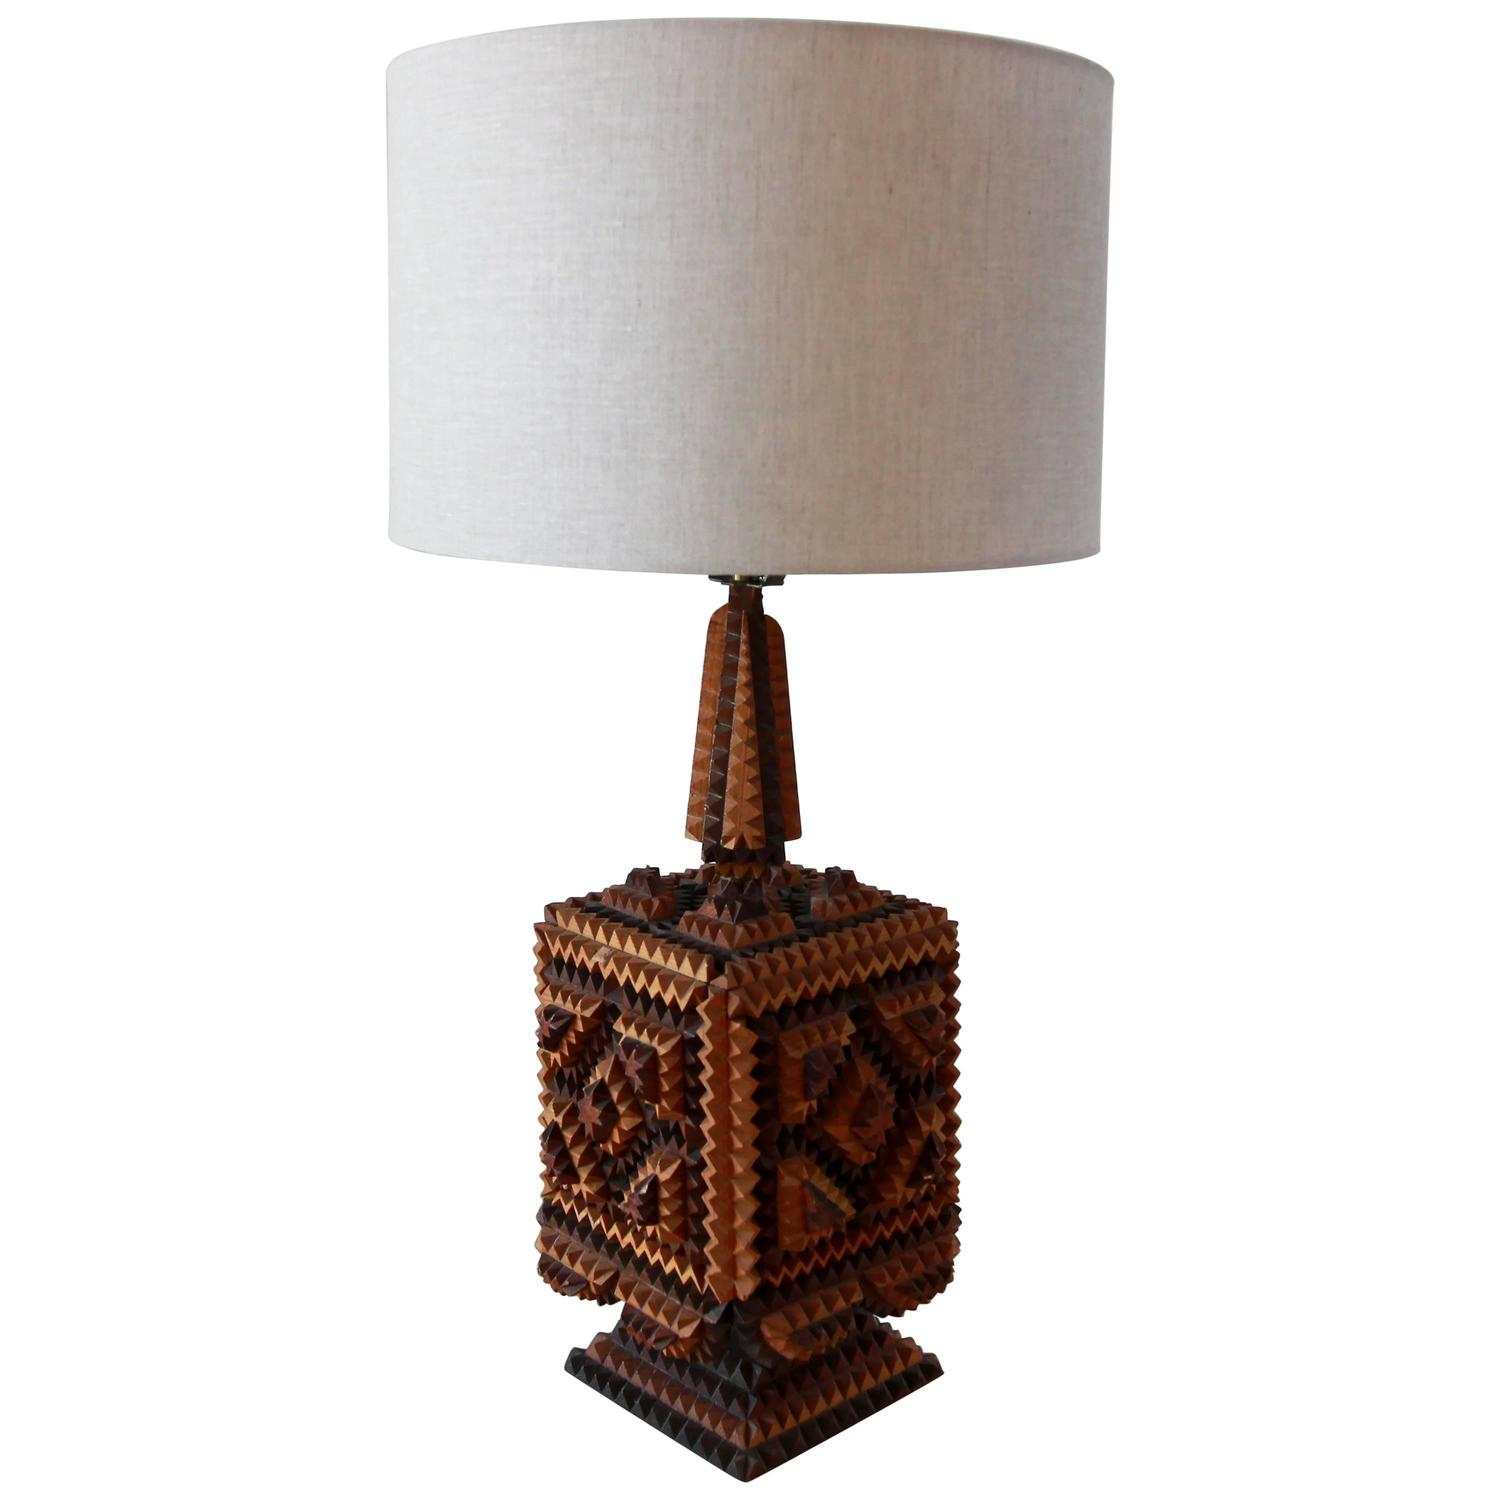 wood tramp table lamp for sale at 1stdibs. Black Bedroom Furniture Sets. Home Design Ideas